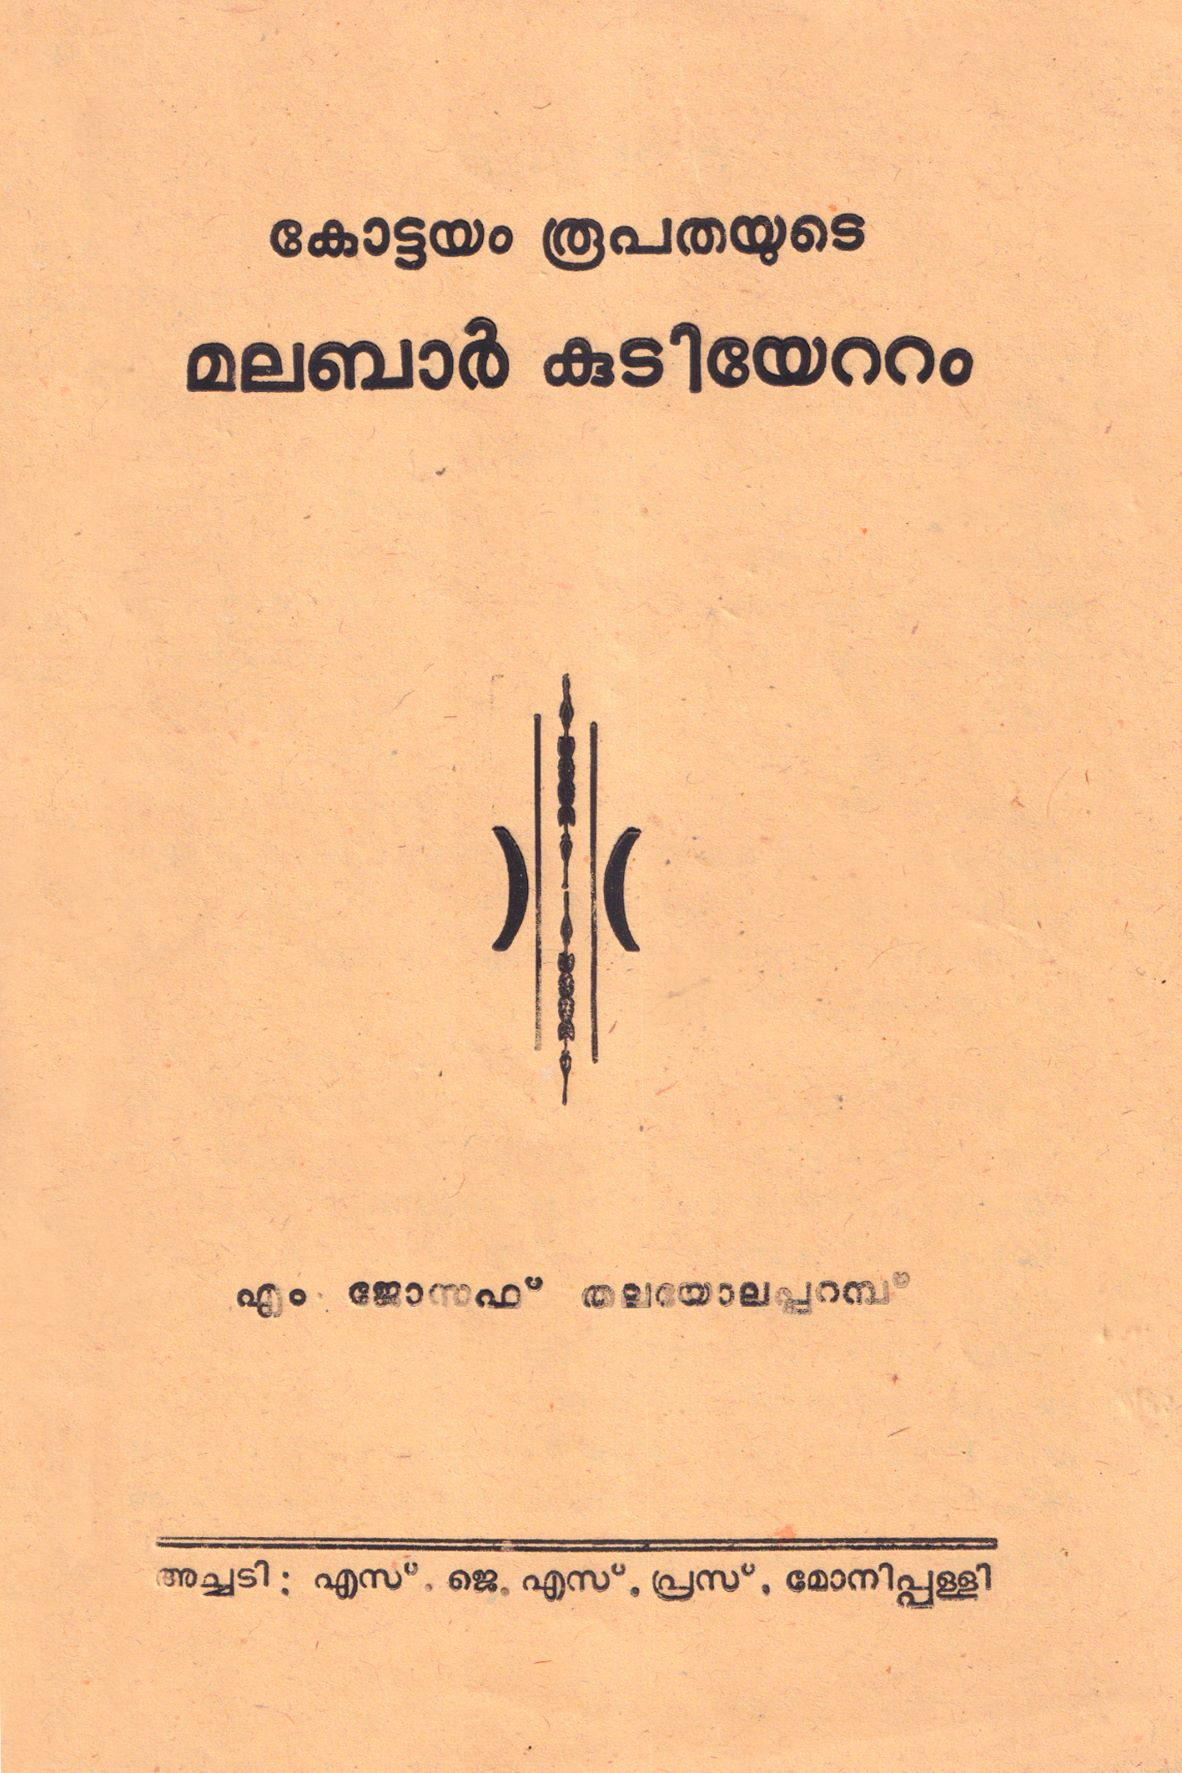 Malabar Migration of the Diocese of Kottayam (Poems)